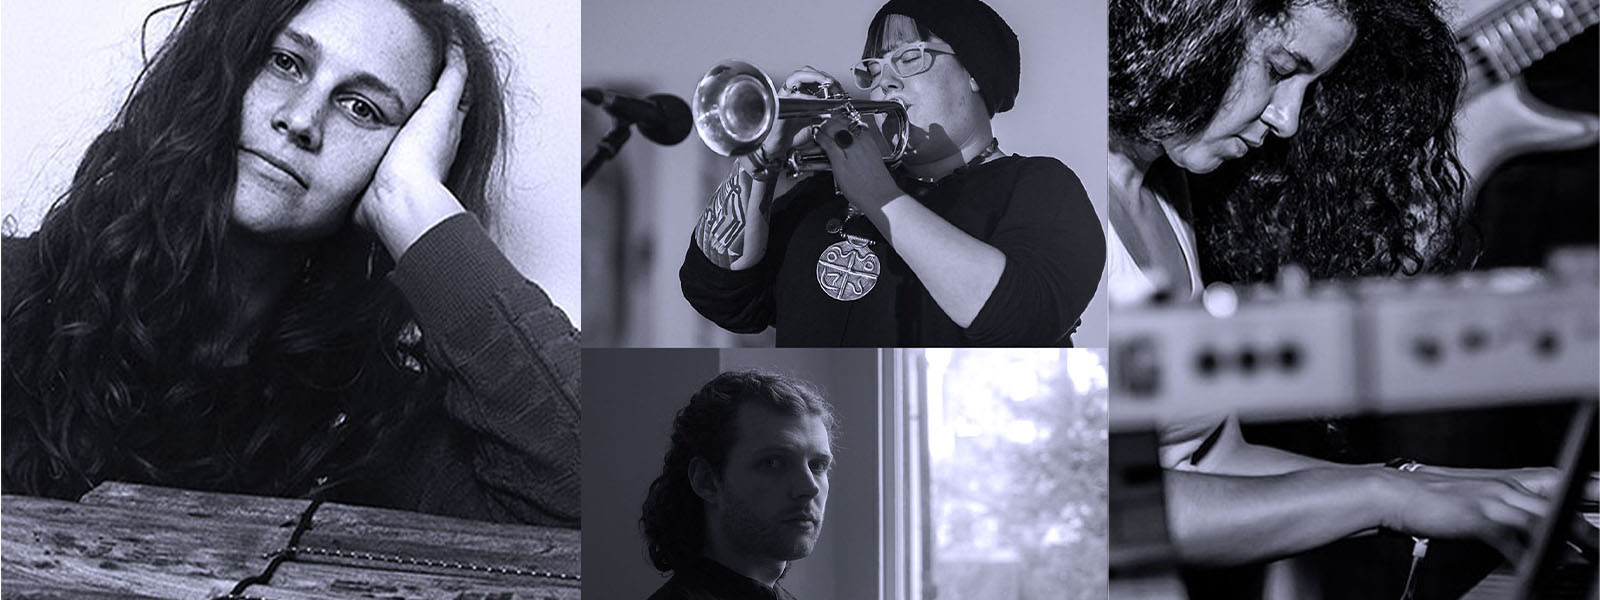 artists montage of Bex Burch playing the trumpet, Kim Macari, Maria Grapsa playing the piano & Ell Kendall